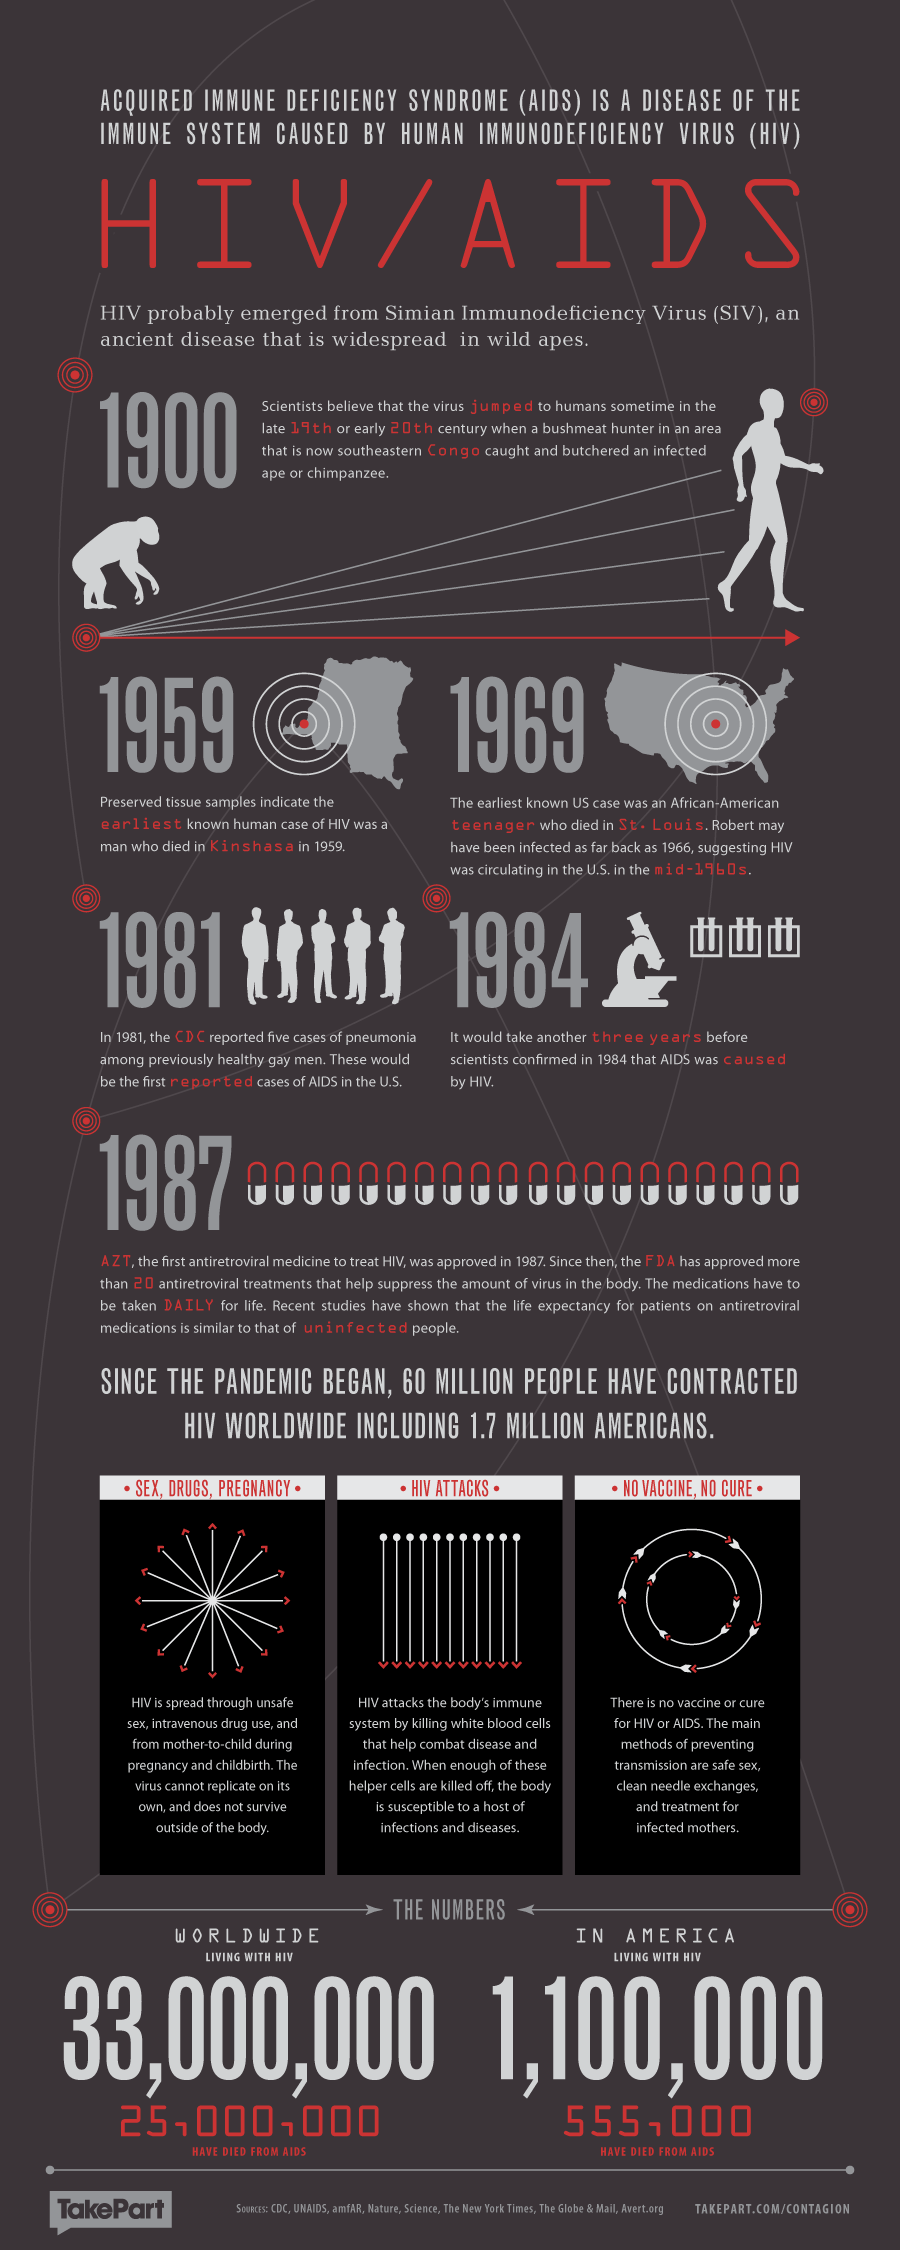 Contagion Health Infographic - HIV & AIDS